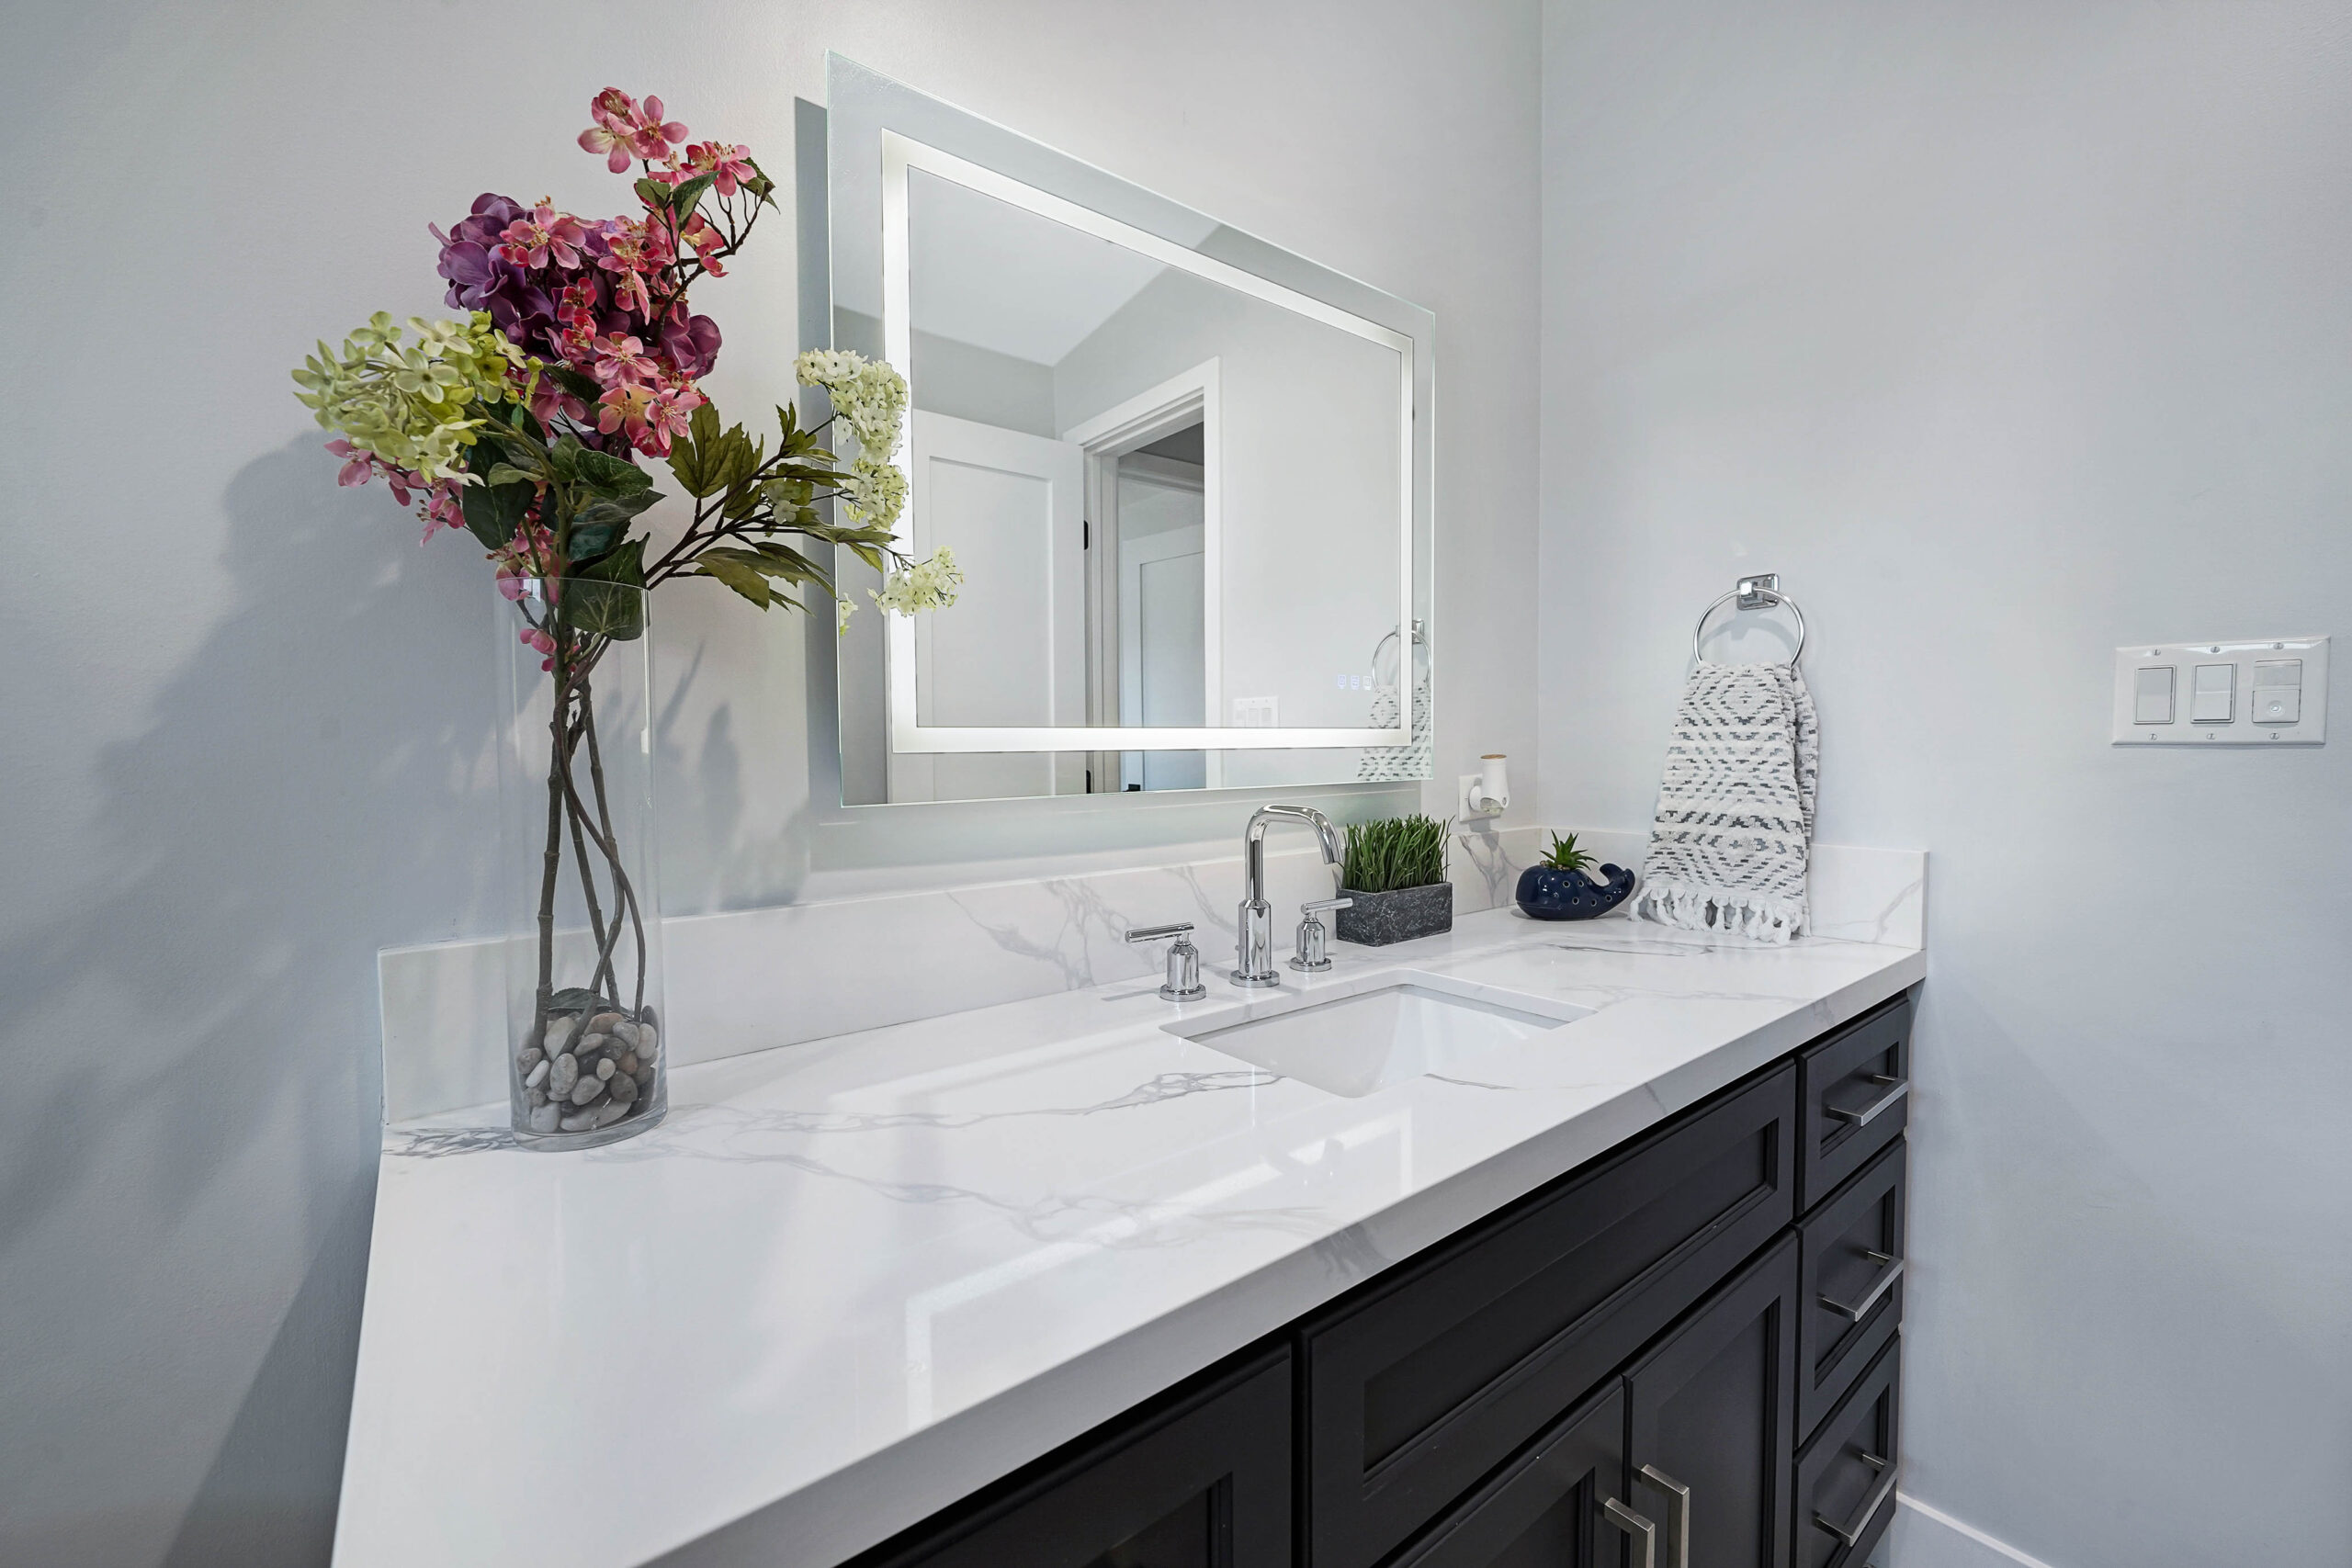 Bathroom remodel - Woodland Hills